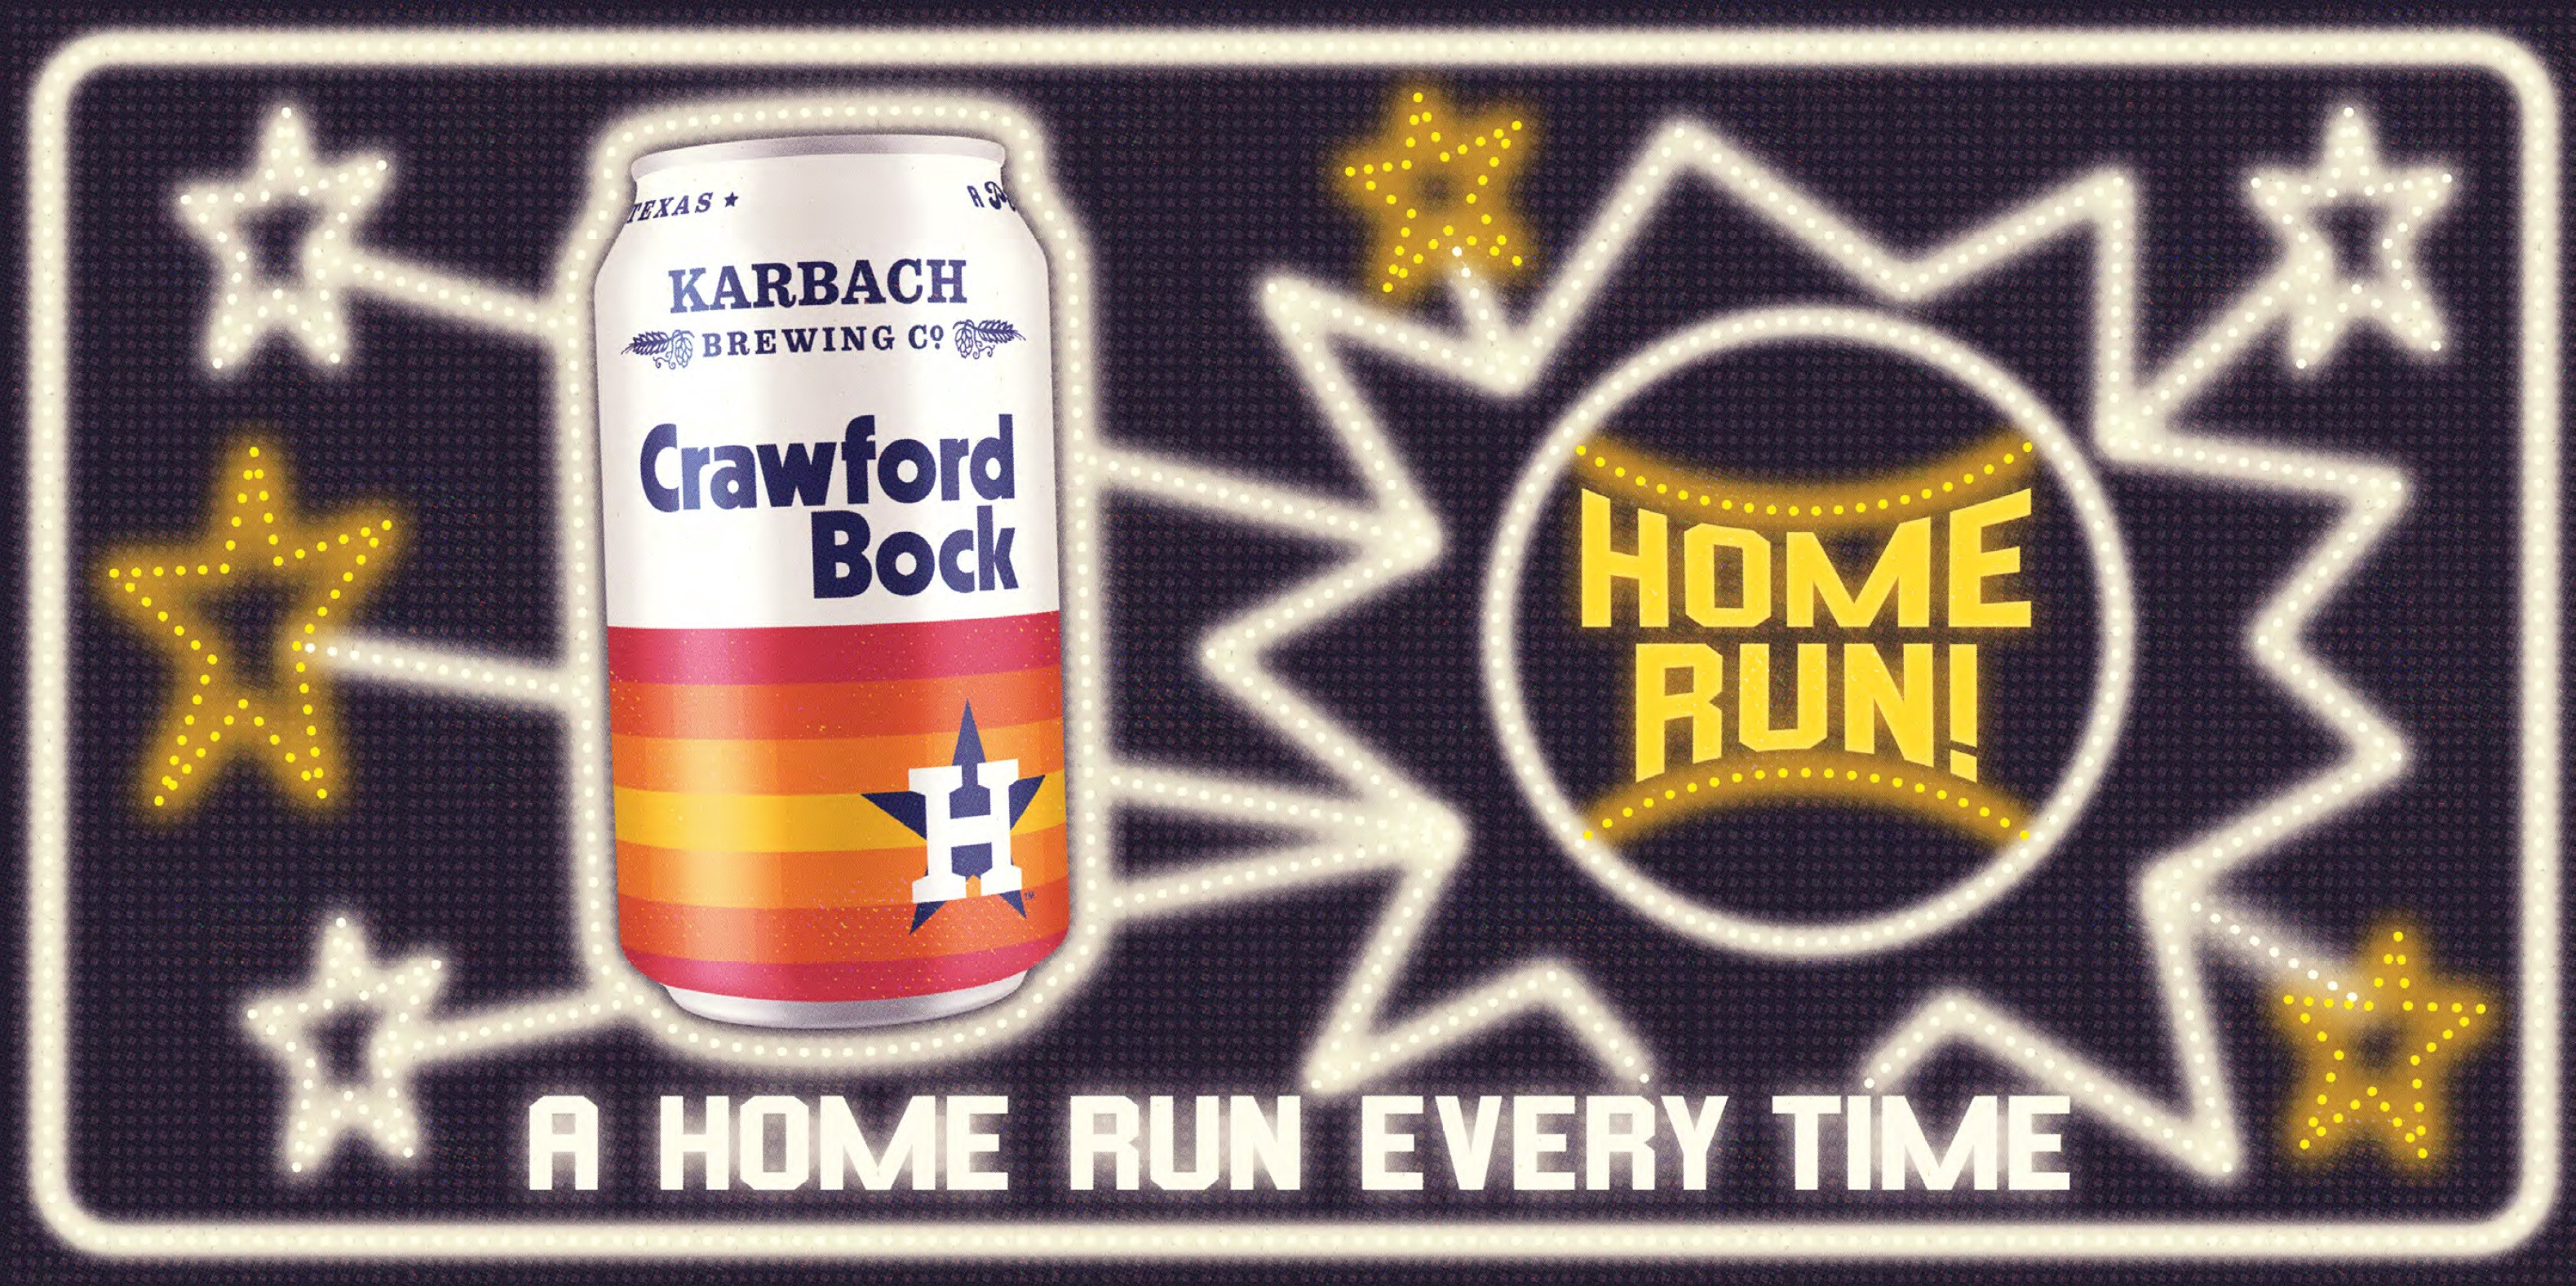 Astros, Karbach Brewing Co  Introduce New Crawford Bock Beer